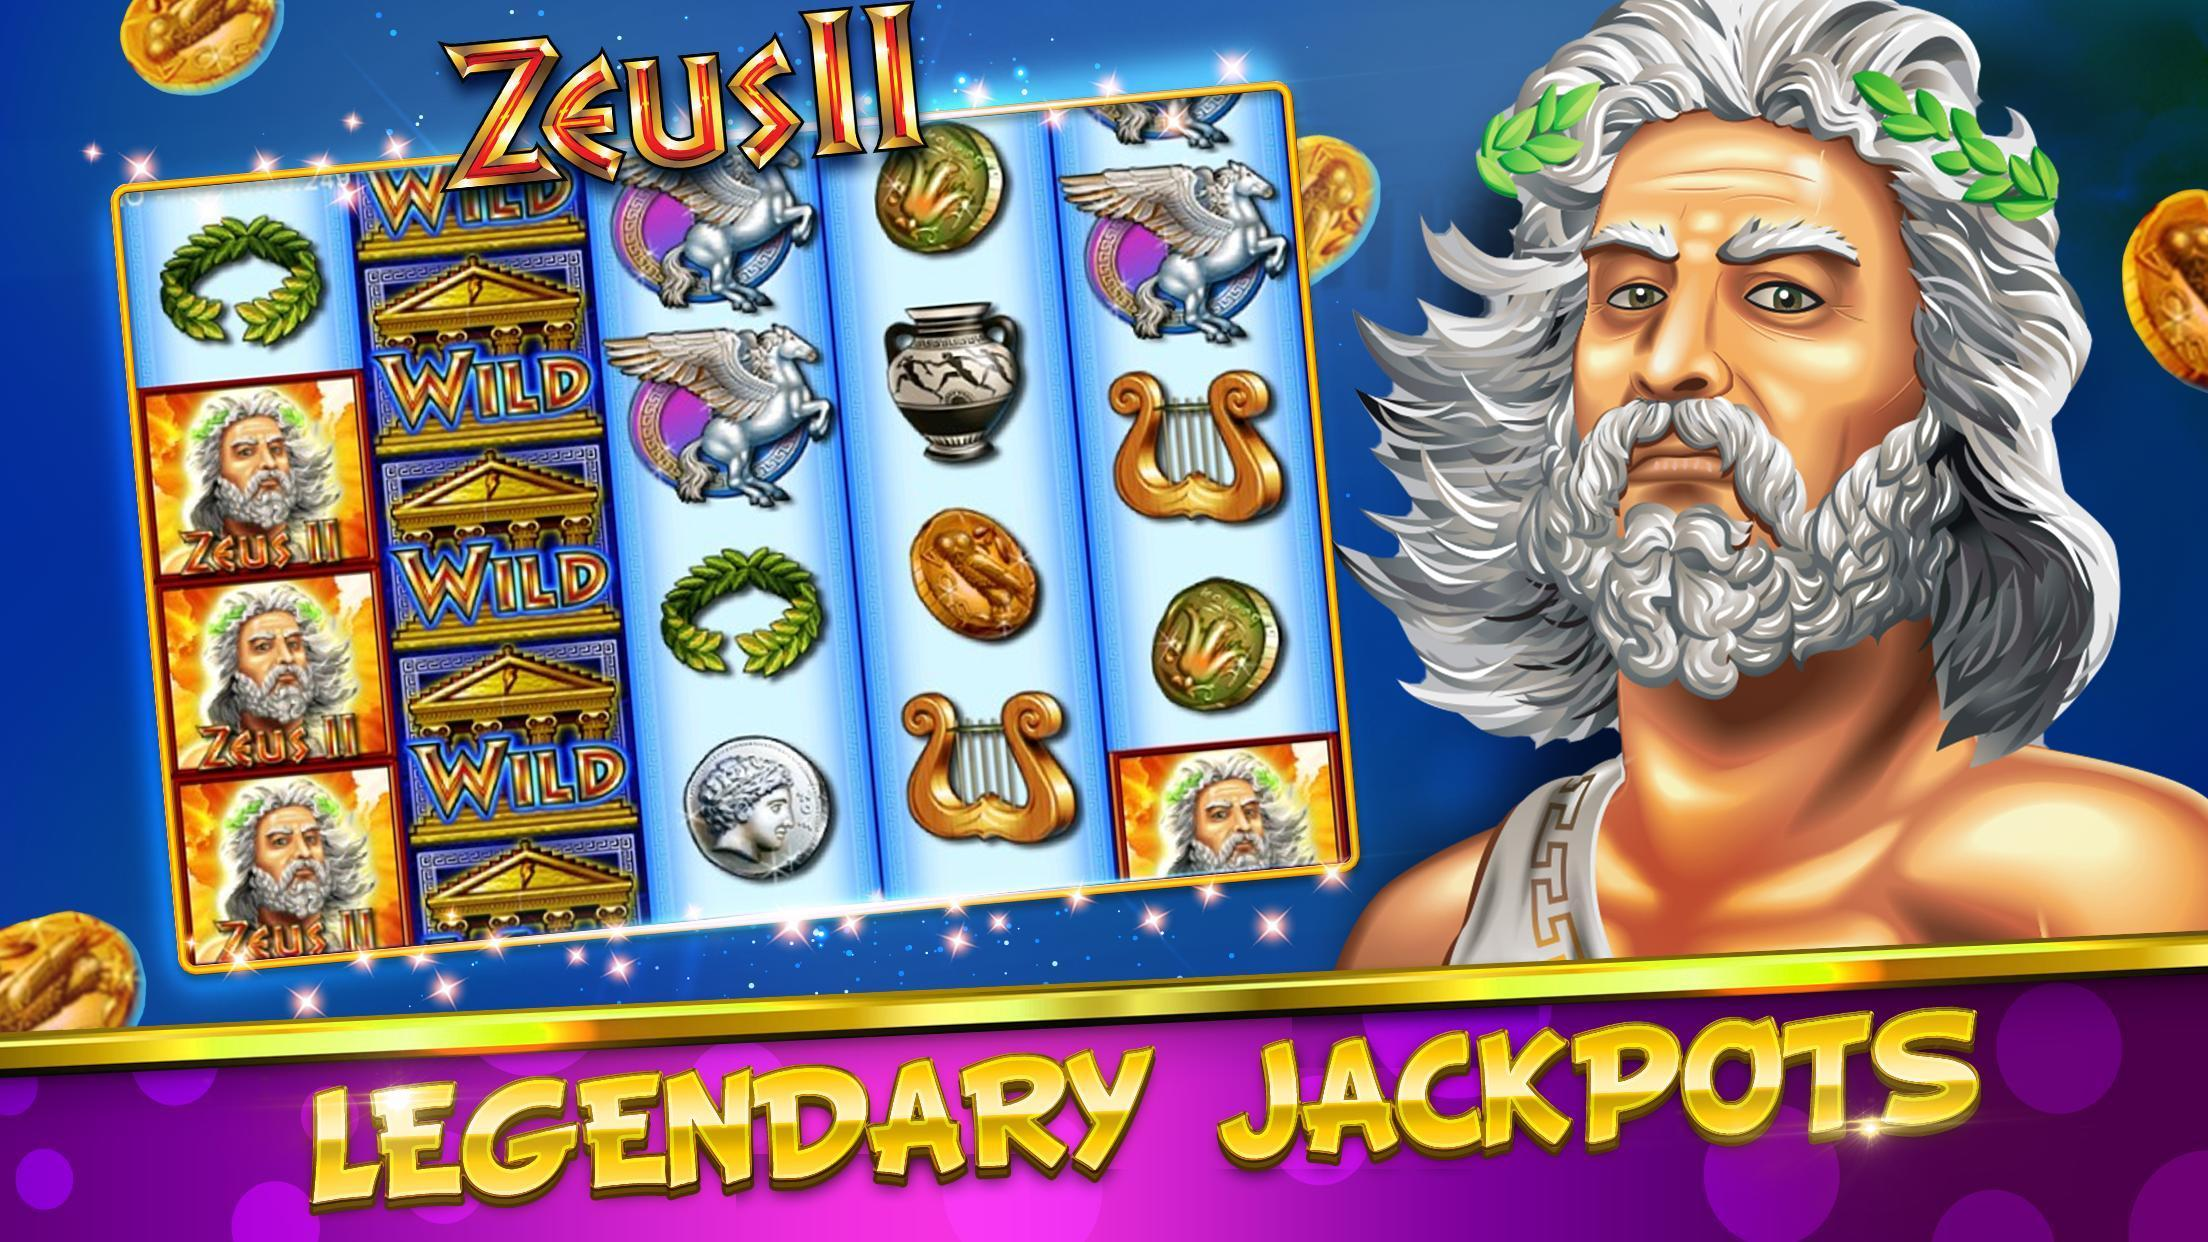 ALL SLOT 888 for Android - APK Download